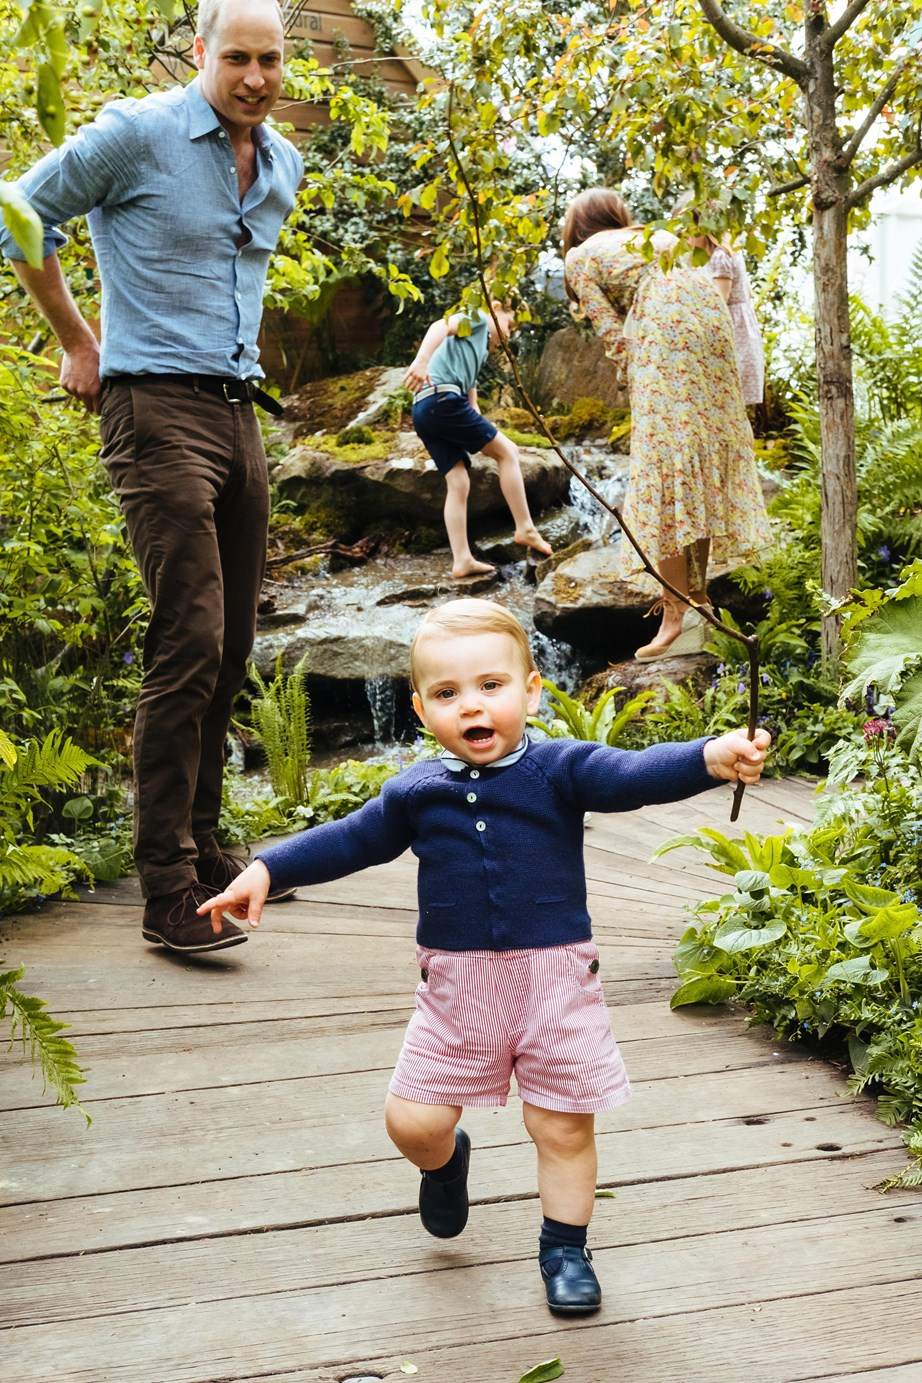 The photographs from the family outing provided us with the first glimpse of little Louis walking. *(Image: Matt Porteous / @KensingtonRoyal)*